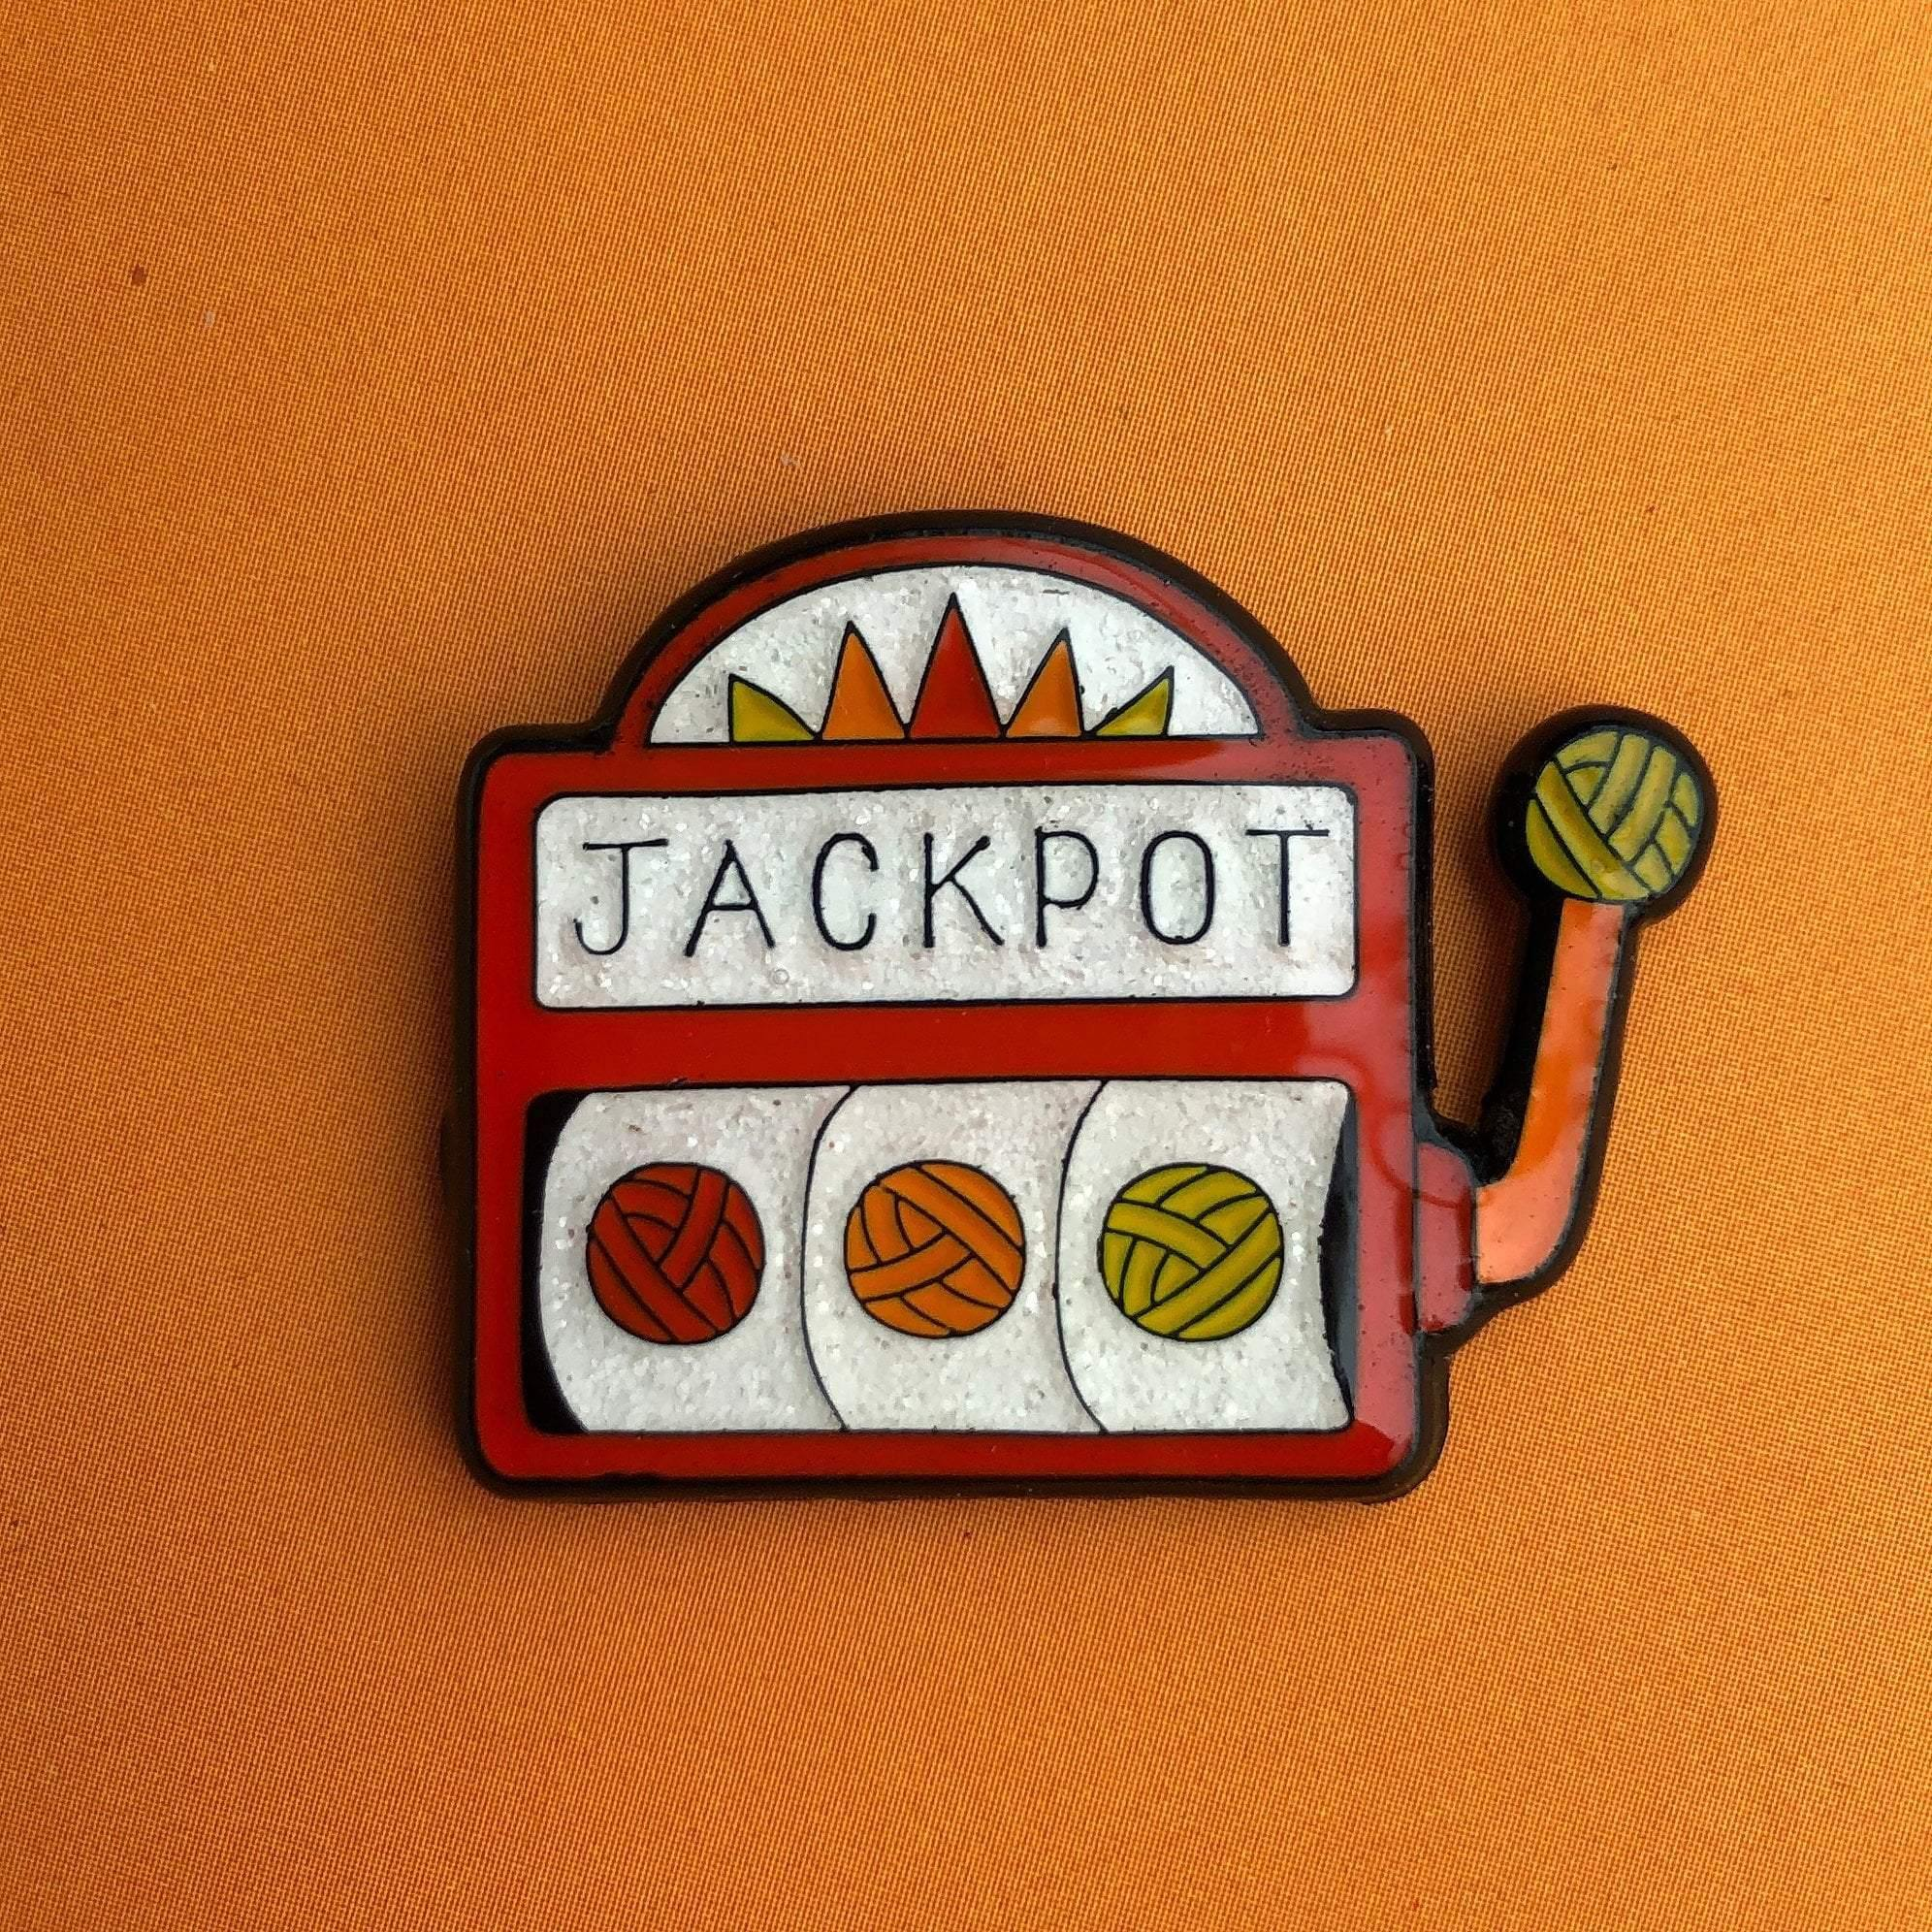 Jackpot Enamel Pin Badge Sue Stratford Pins & Needles